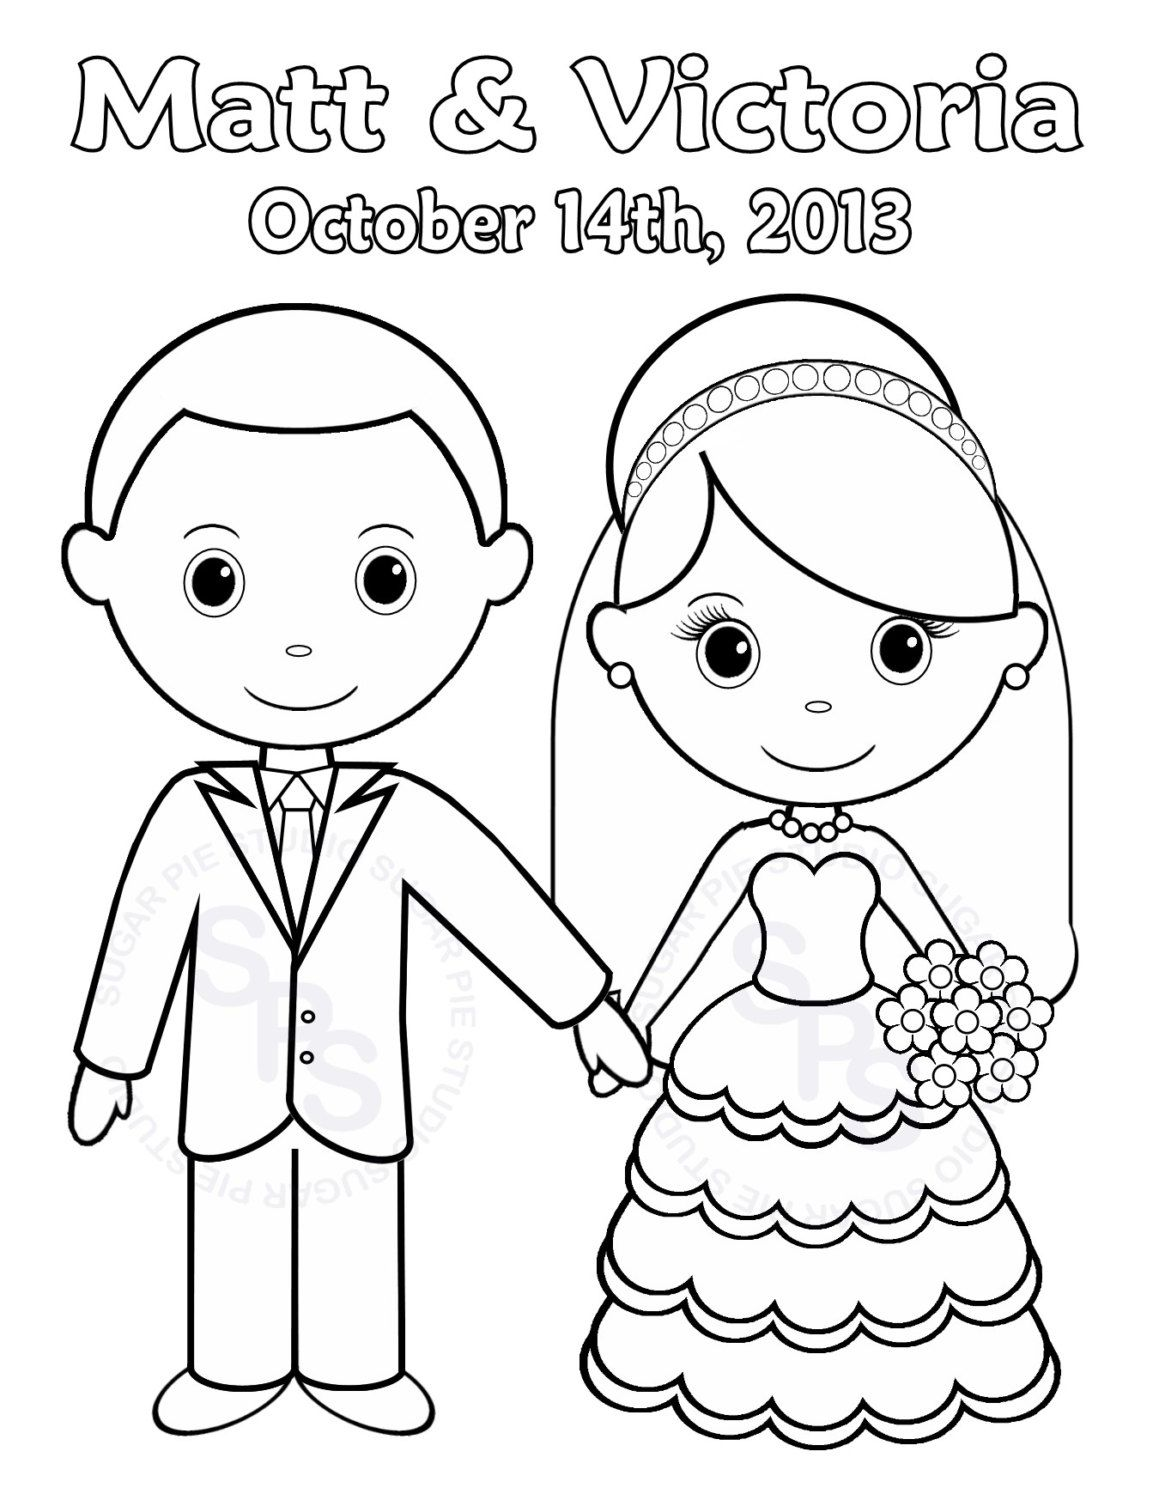 1159x1500 The Best Printable Wedding Coloring Pages Kids Image For Color